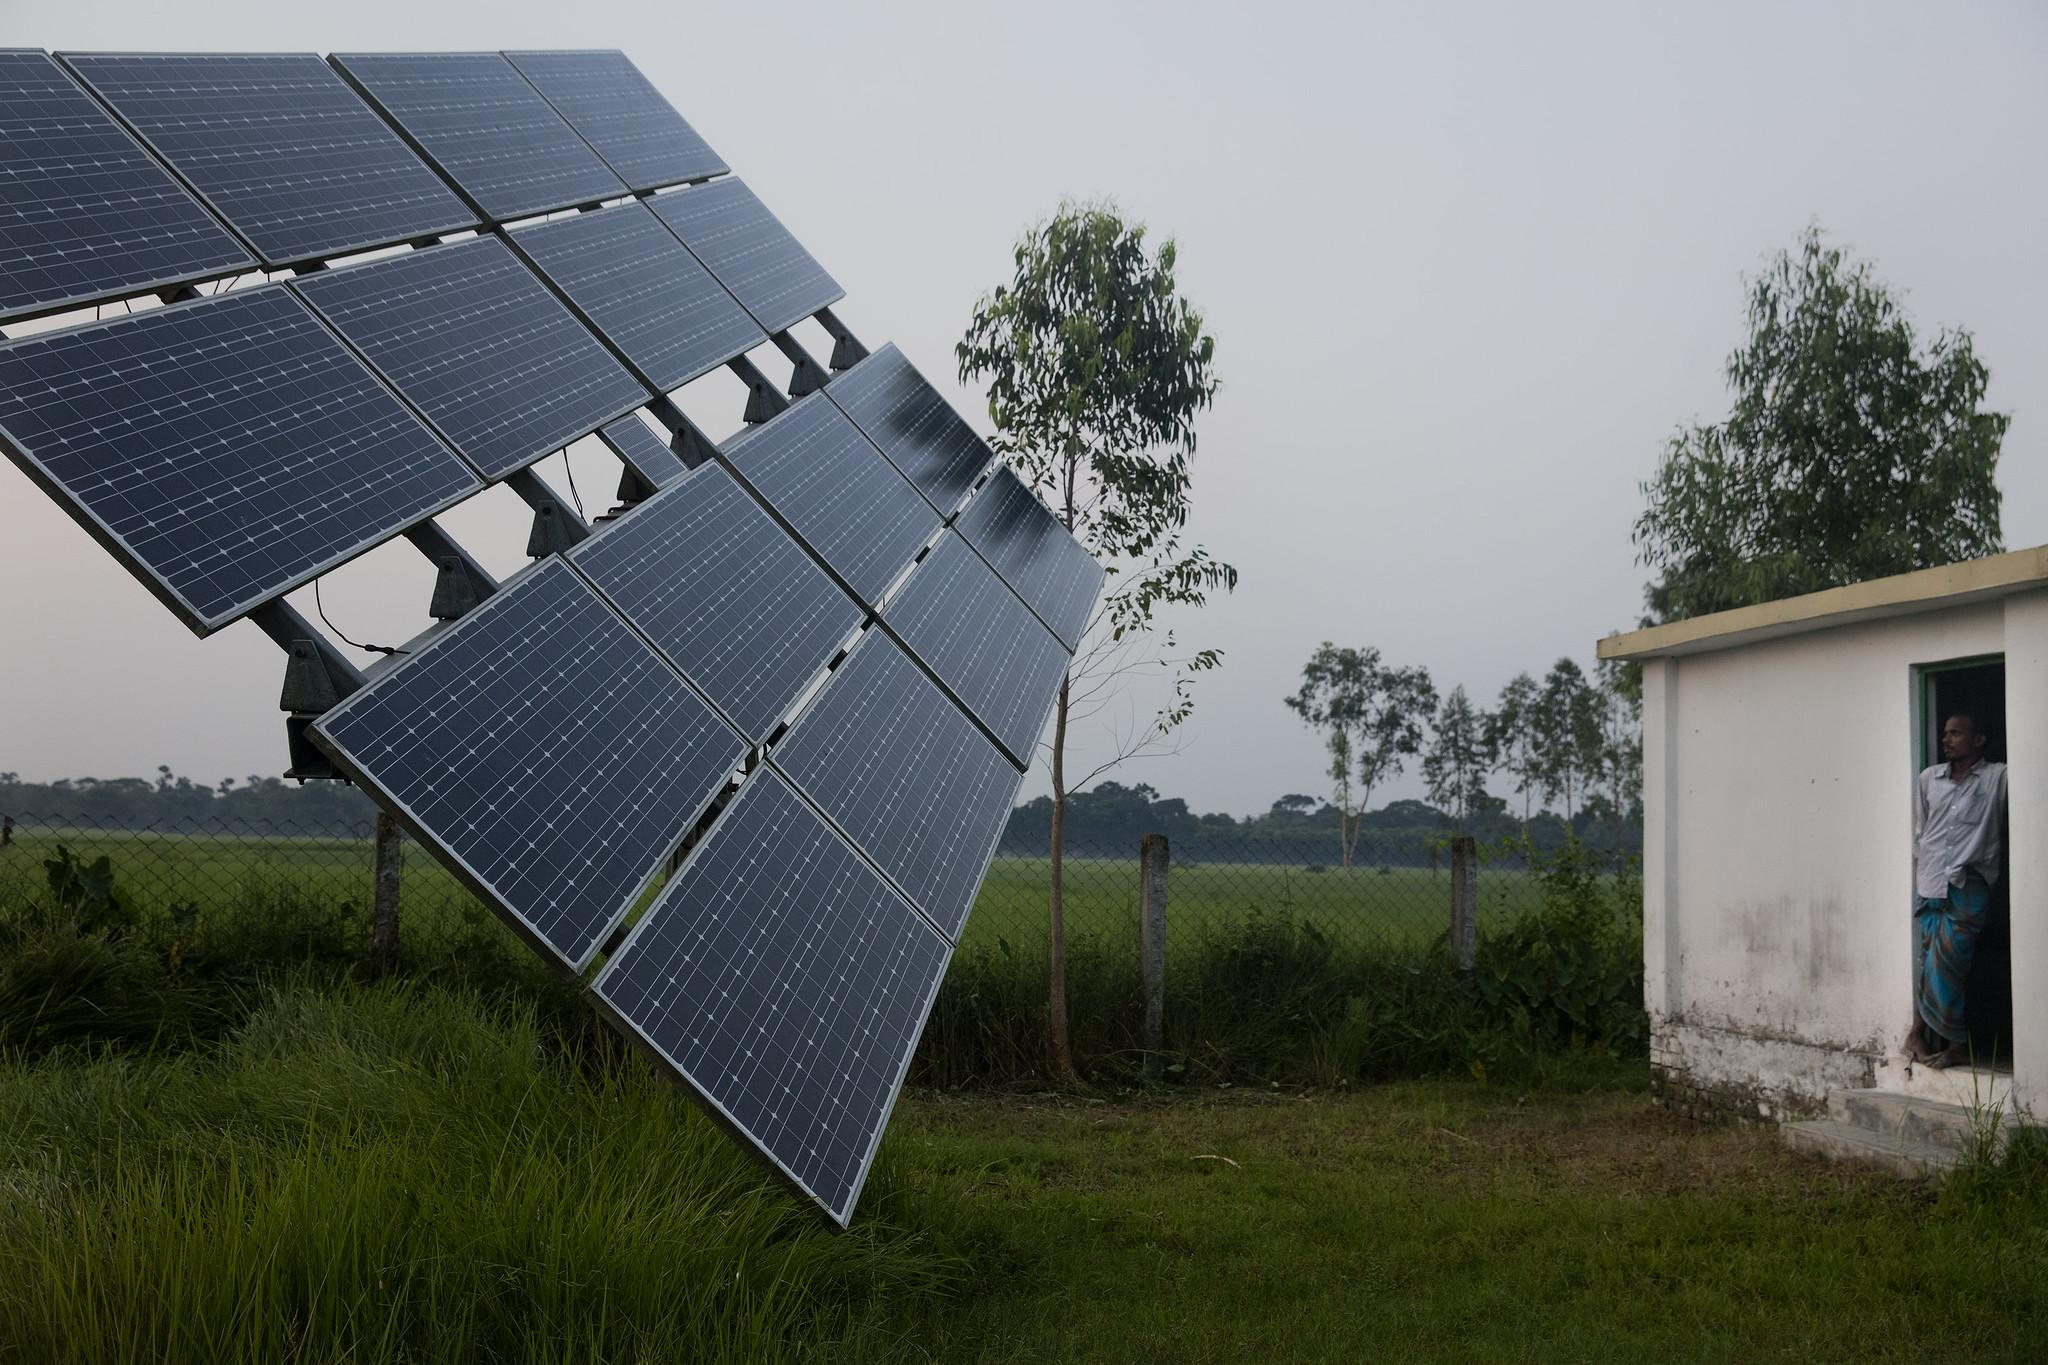 Bringing solar irrigation to farmers and solar home systems to families in Bangladesh.